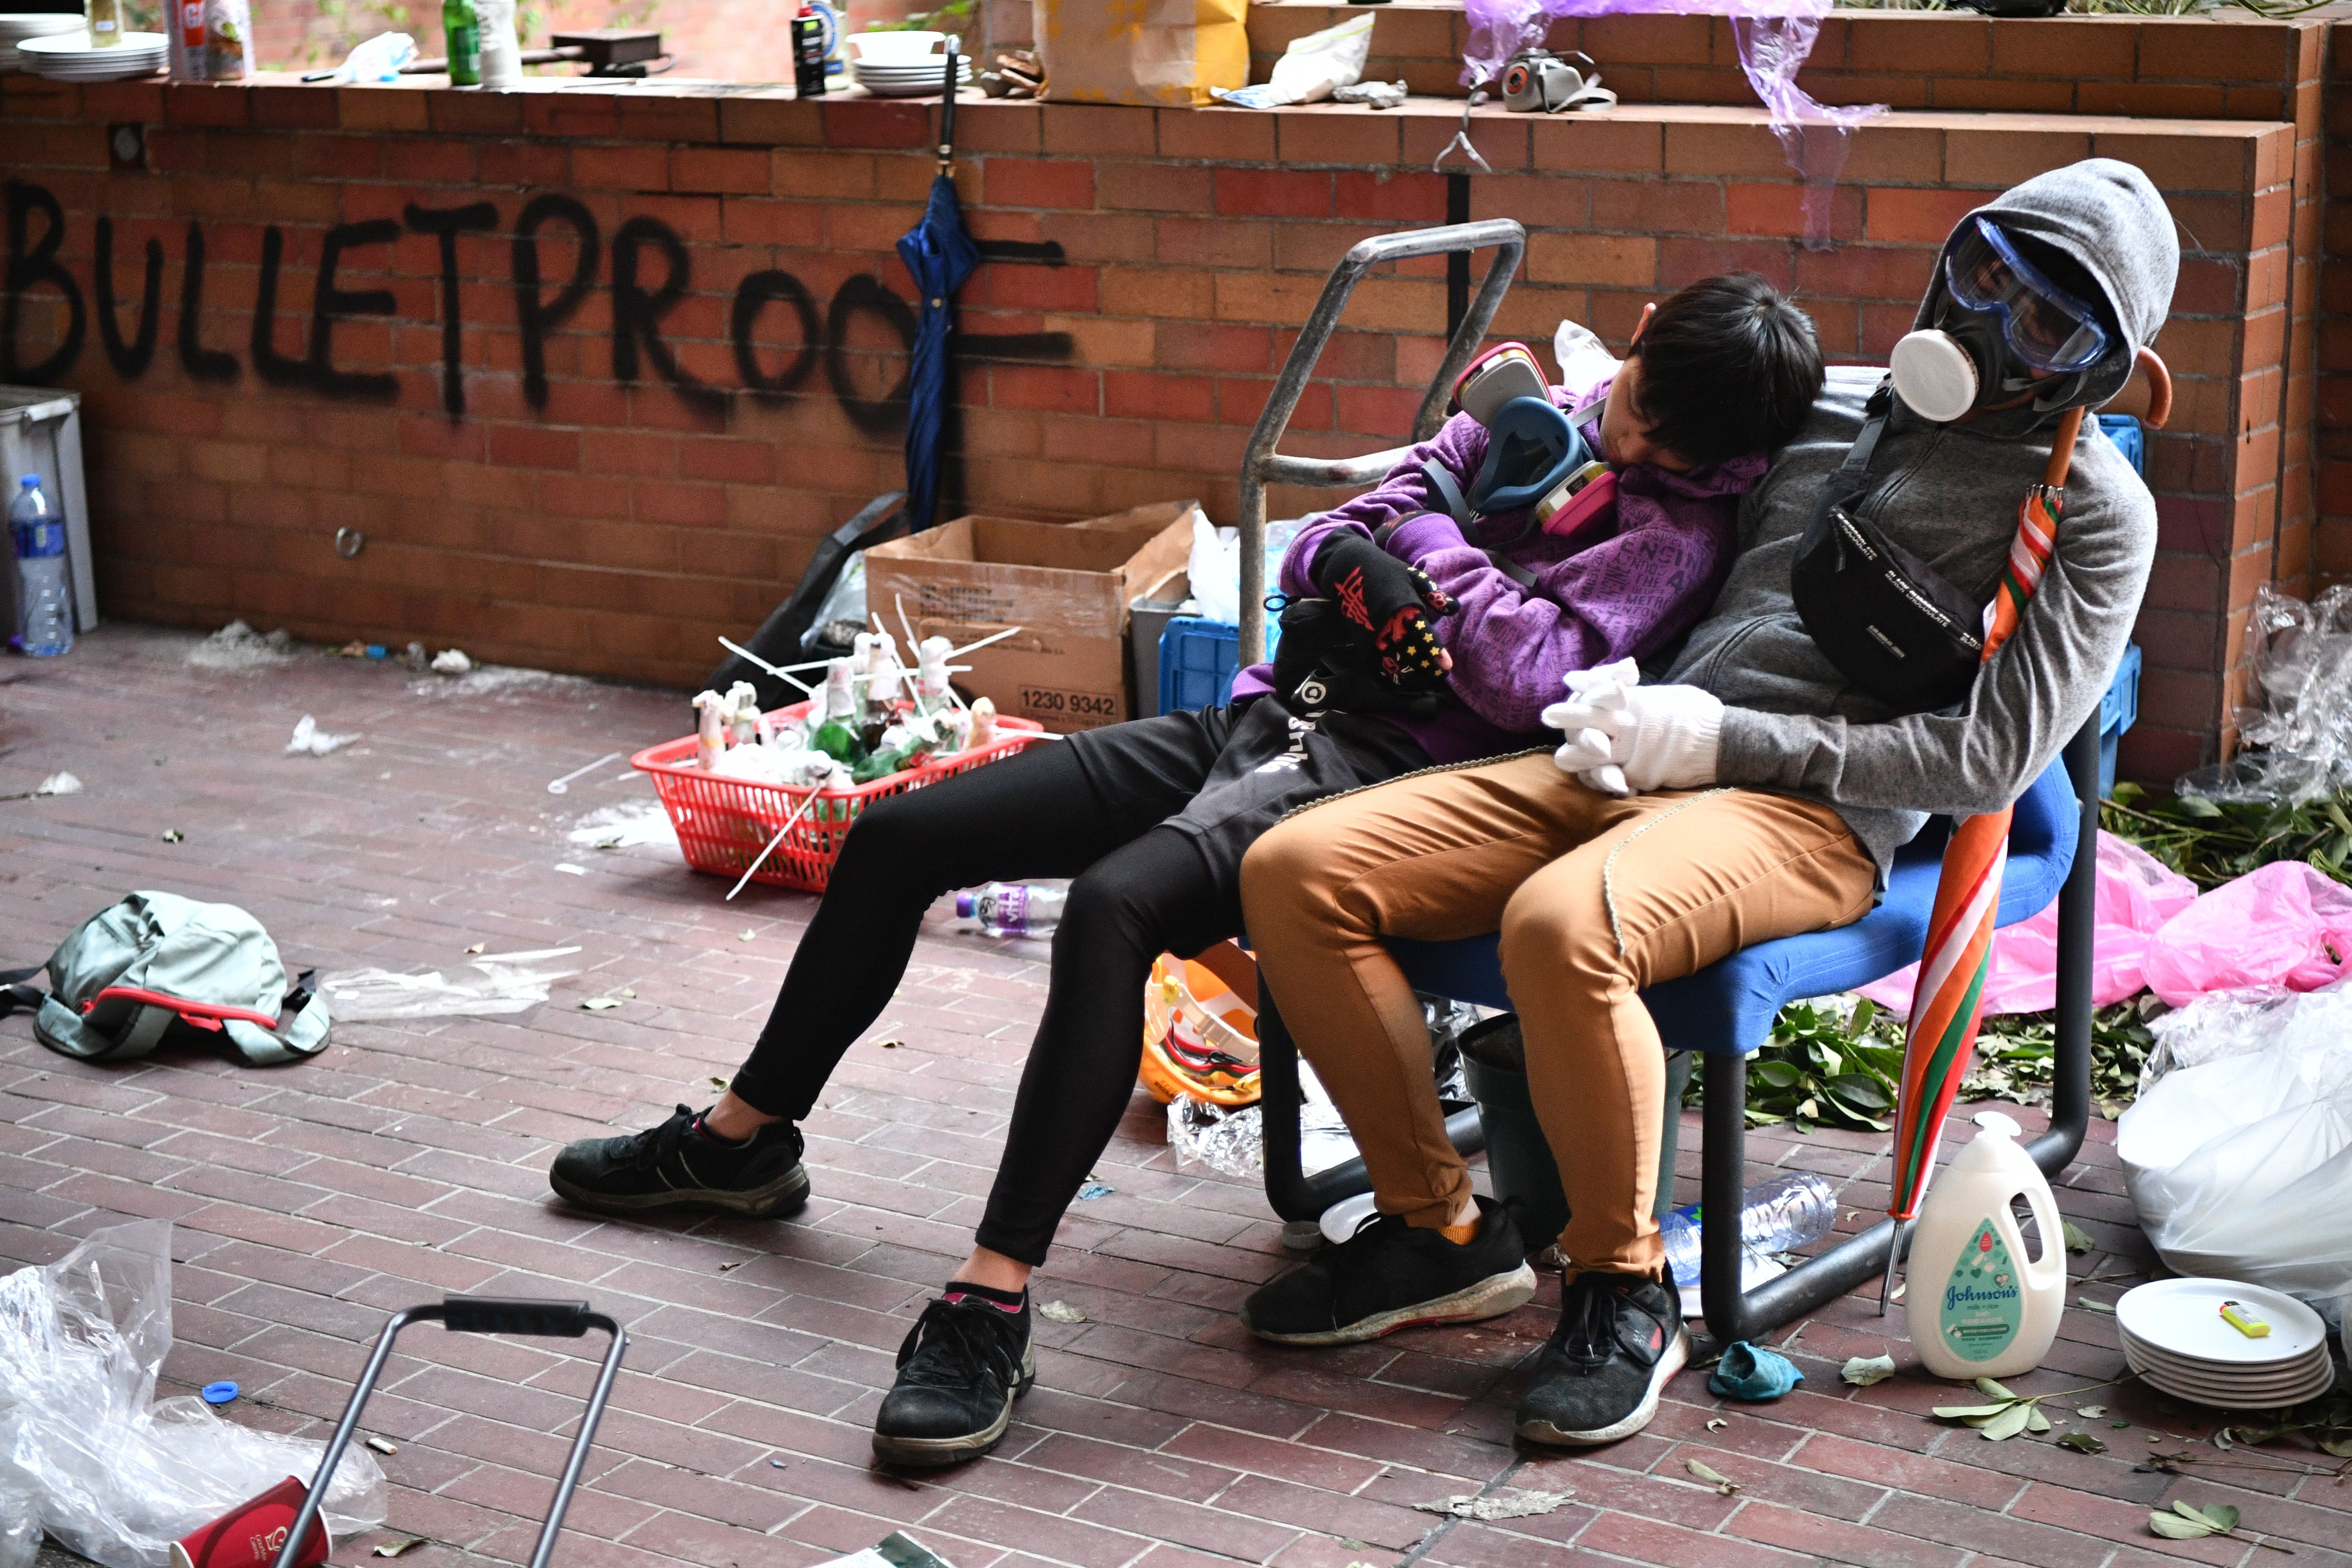 Protesters rest during a lull in clashes at the Hong Kong Polytechnic University in Hung Hom district of Hong Kong on November 18.